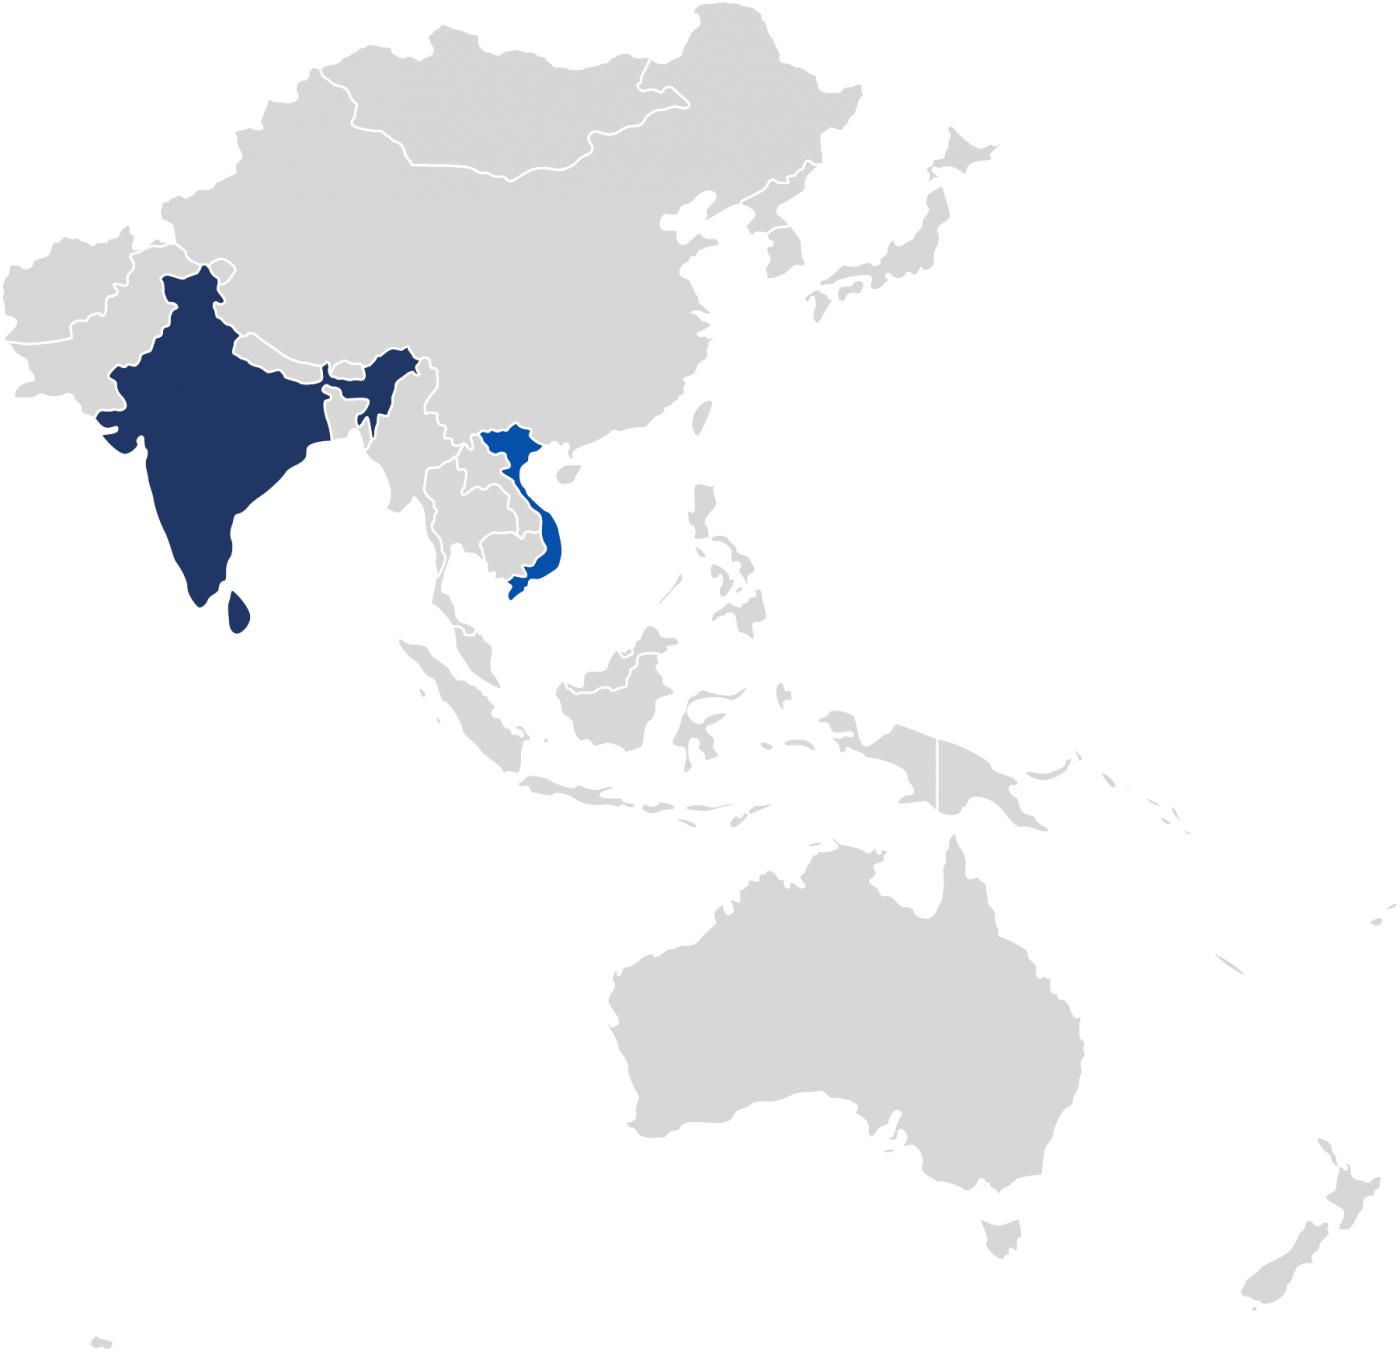 World map highlighting the 2 countries in which our project supporting survivors of human trafficking is operational in the Asia Pacific region.